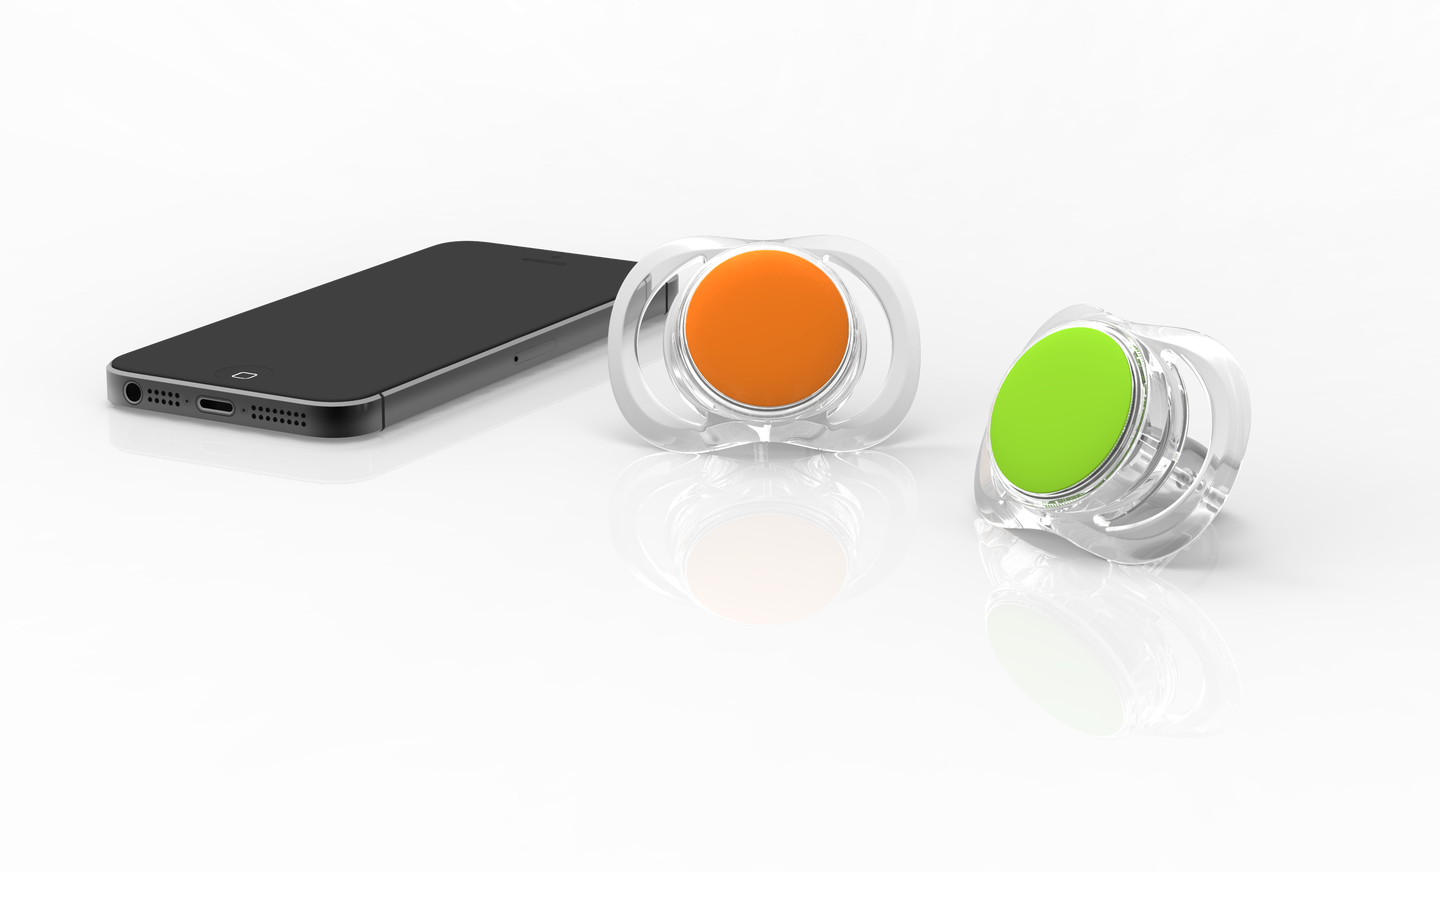 CES 2015: A Smart Pacifier For Peace Of Mind